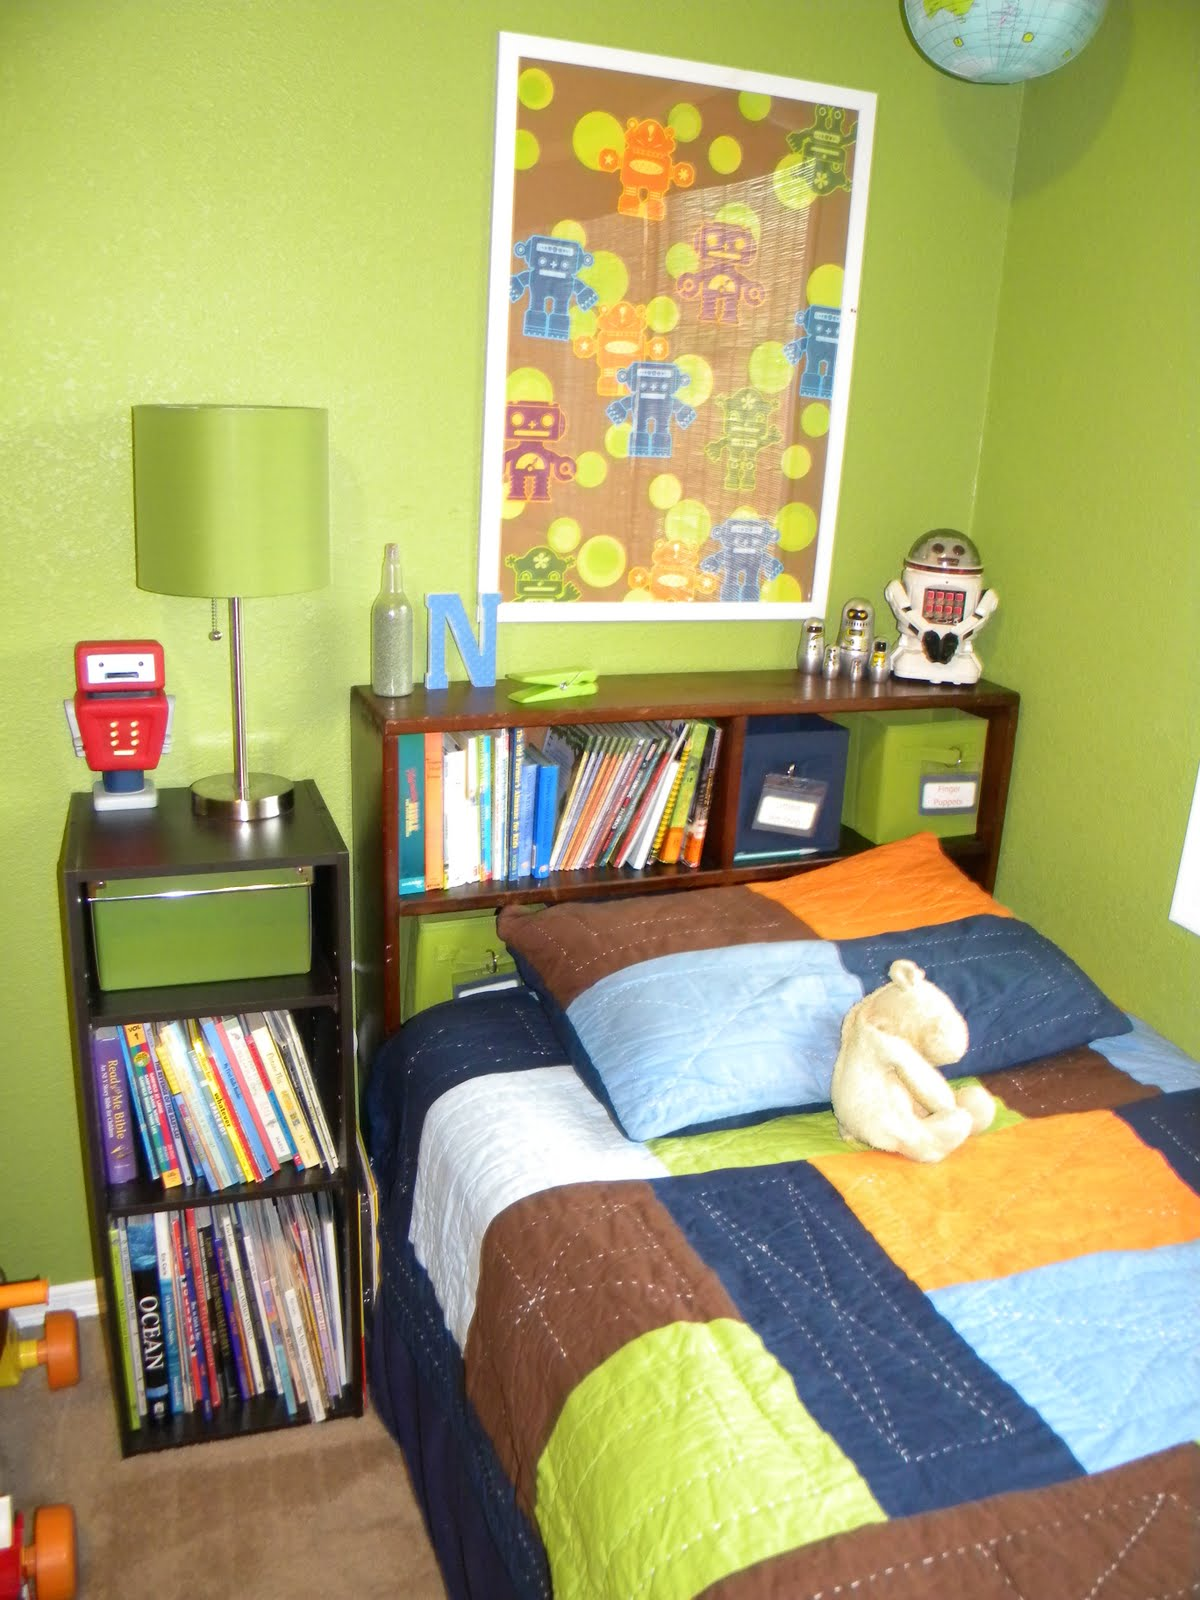 hereu0027s a closer look at noahu0027s bed his nightstand is another cubby thing from target and the green box on the top shelf acts a sort of drawer for noahu0027s